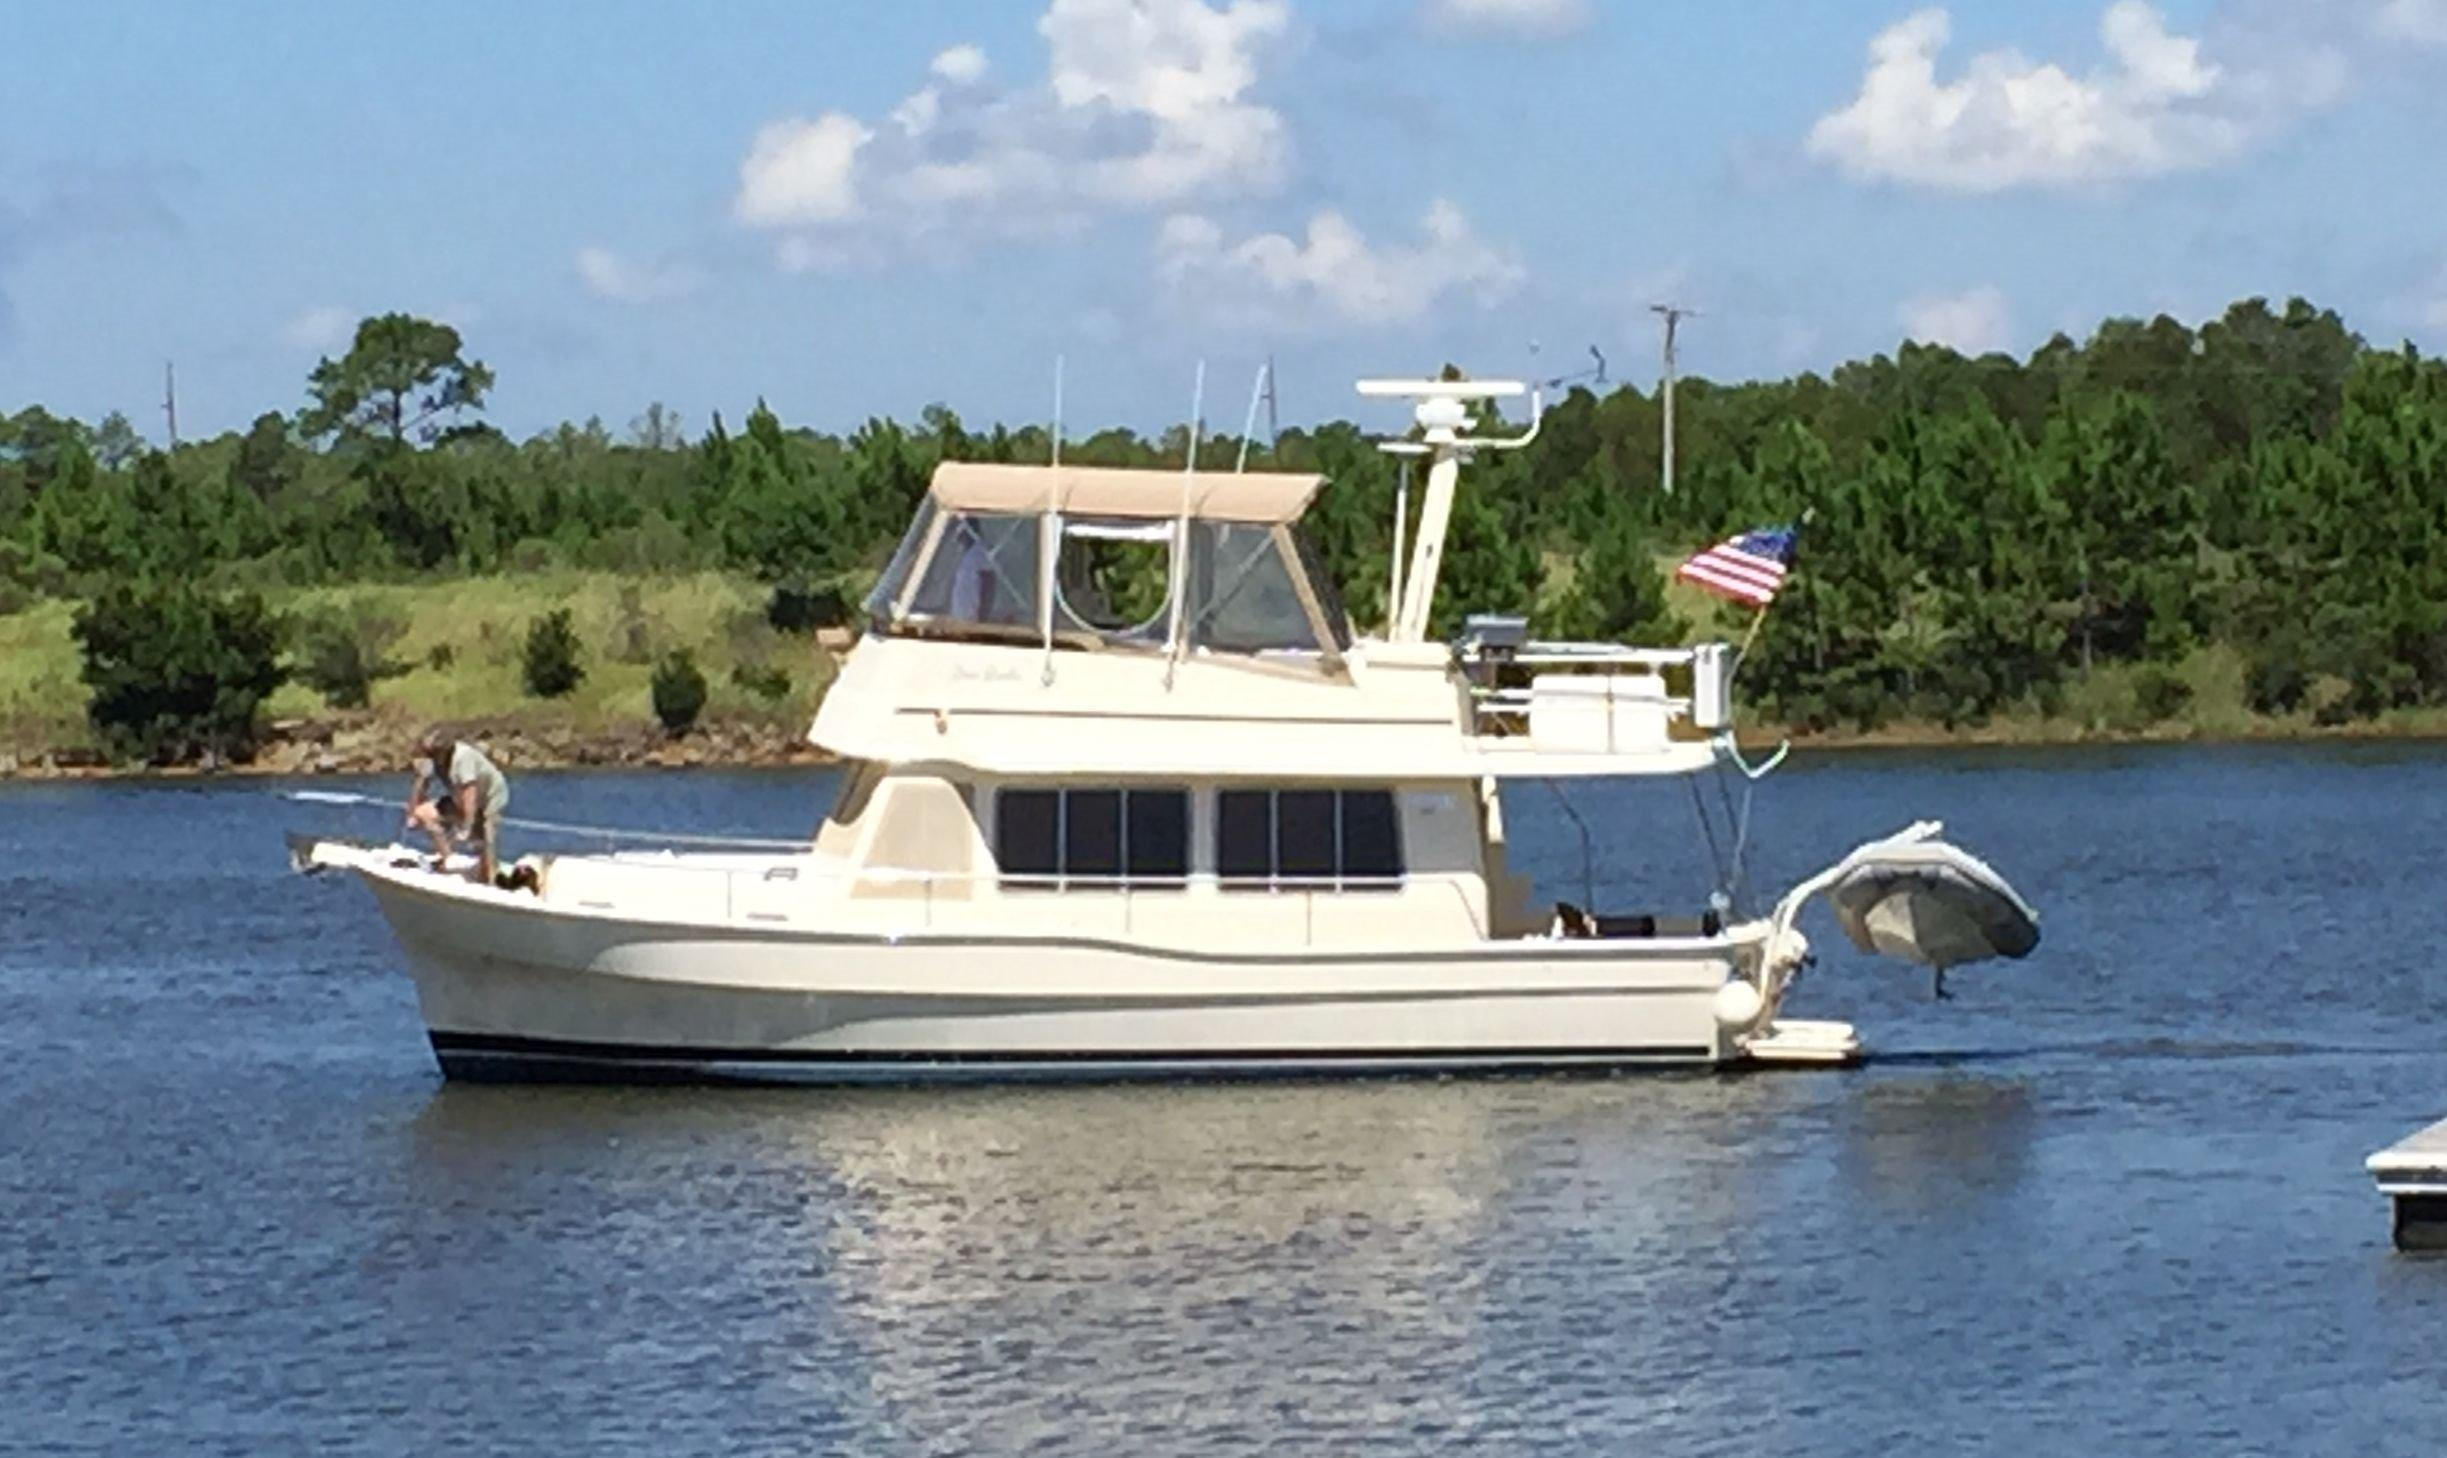 5953099_20160928114355094_1_XLARGE&w=924&h=693&t=1475091861000 2004 mainship 400 trawler power boat for sale www yachtworld com  at love-stories.co